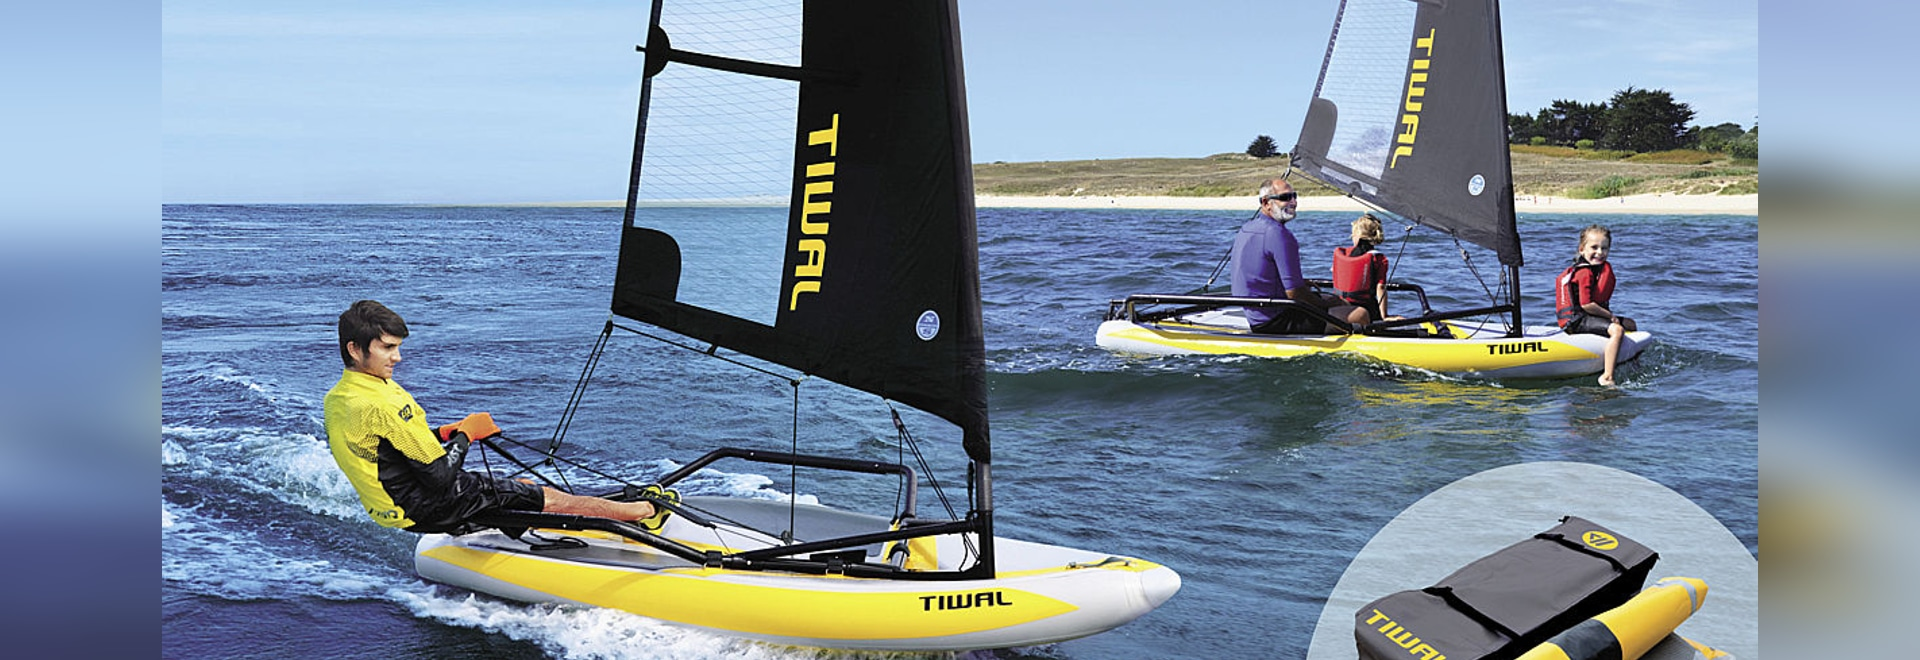 TIWAL 3.2, first high performance inflatable sailing dinghy